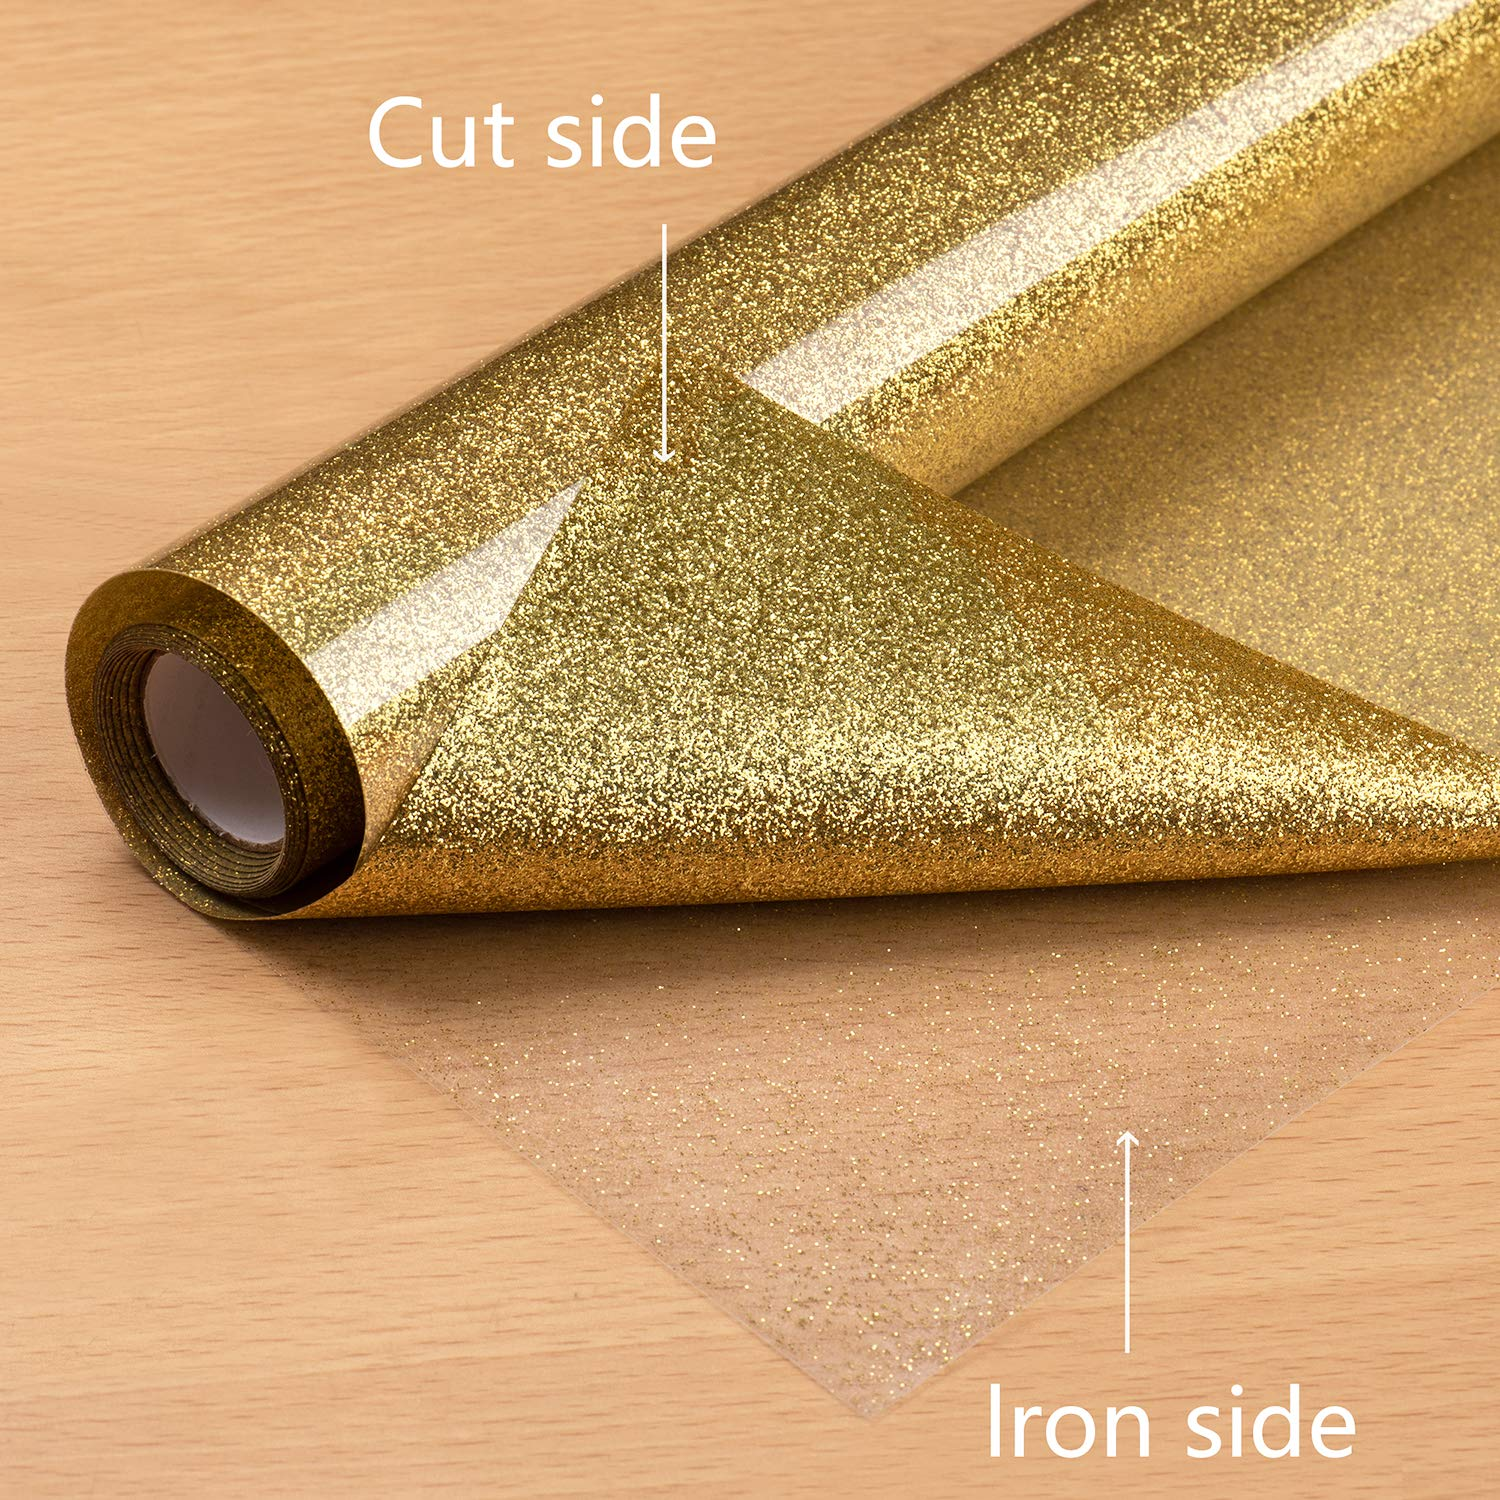 12 x 5ft PU Heat Transfer Vinyl roll Glitter HTV vinyl Iron On Vinyl for Cricut /& Silhouette Cameo Easy to Cut /& Weed Vibrant Color Design for T-Shirt and Other Textiles Durable Gold